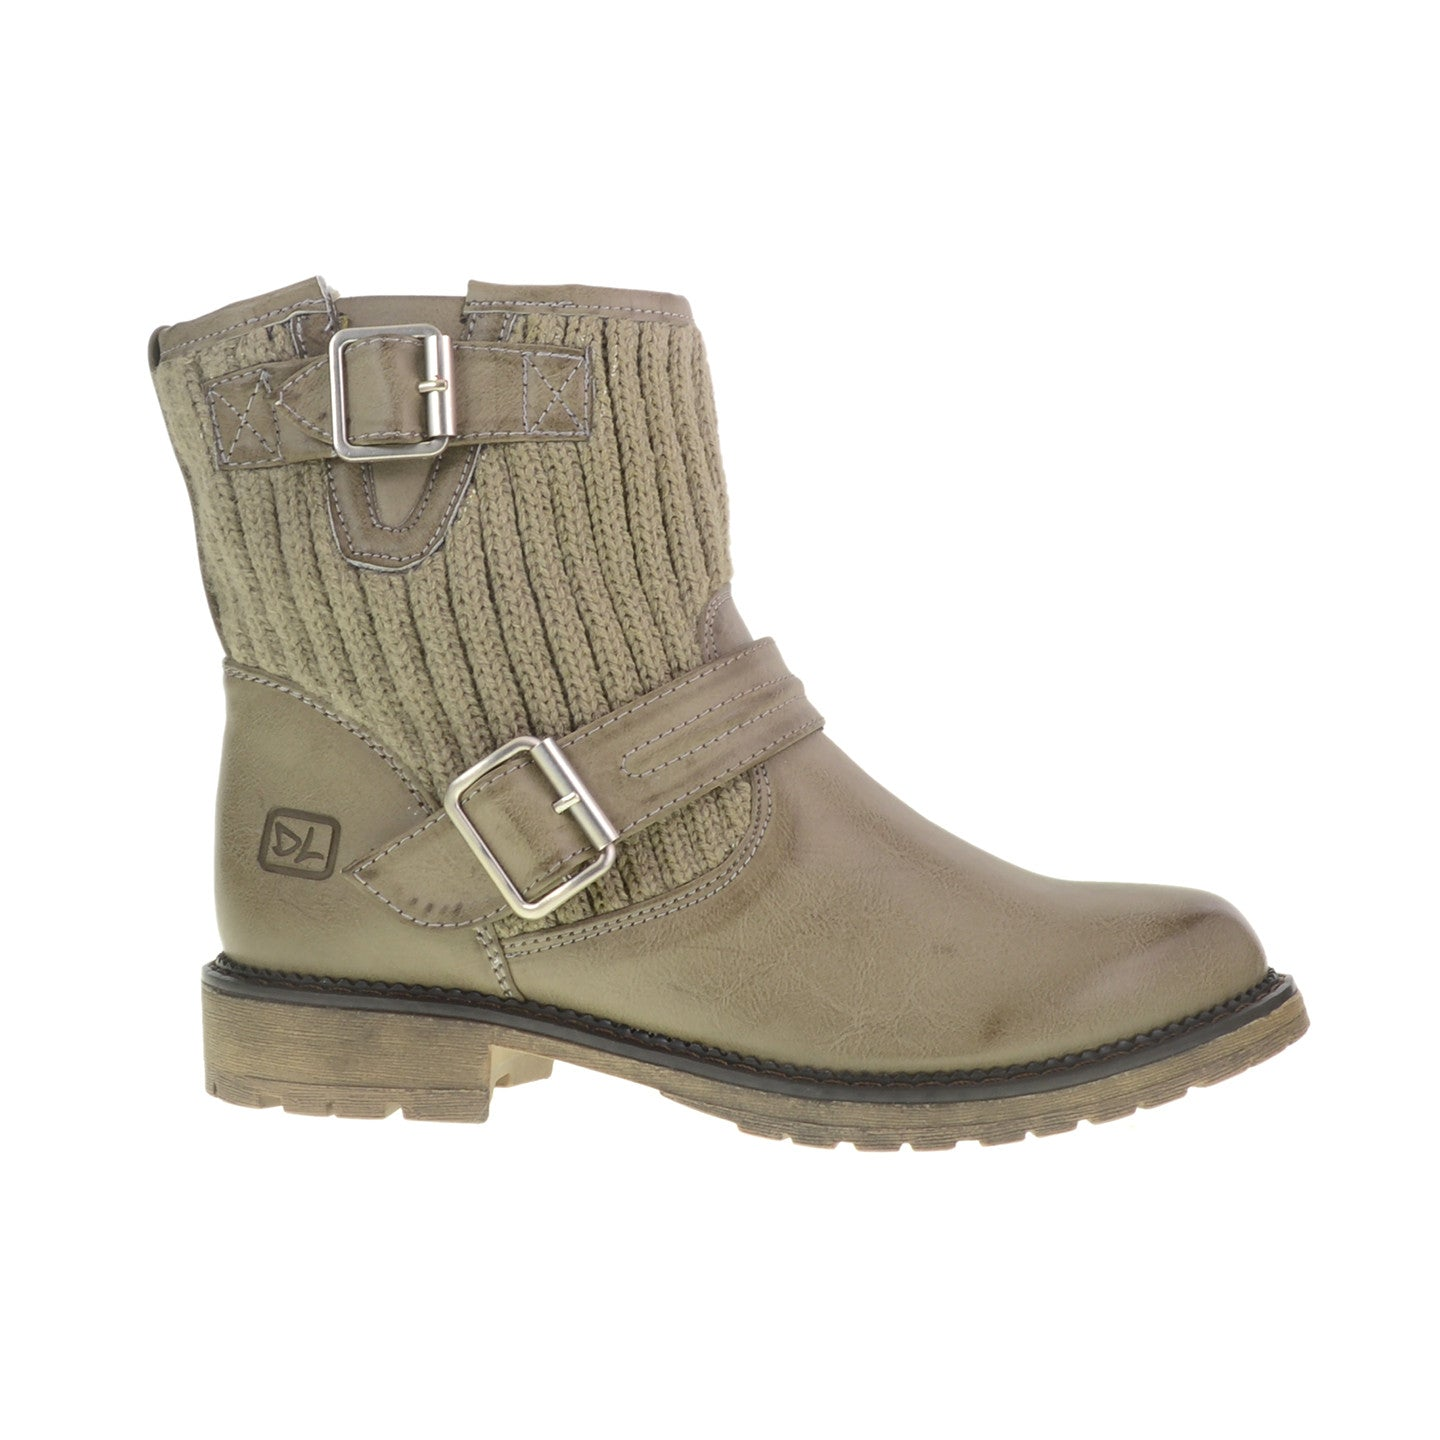 Dirty Laundry - Roger That - Vegan Burnis Boots - showdown grey